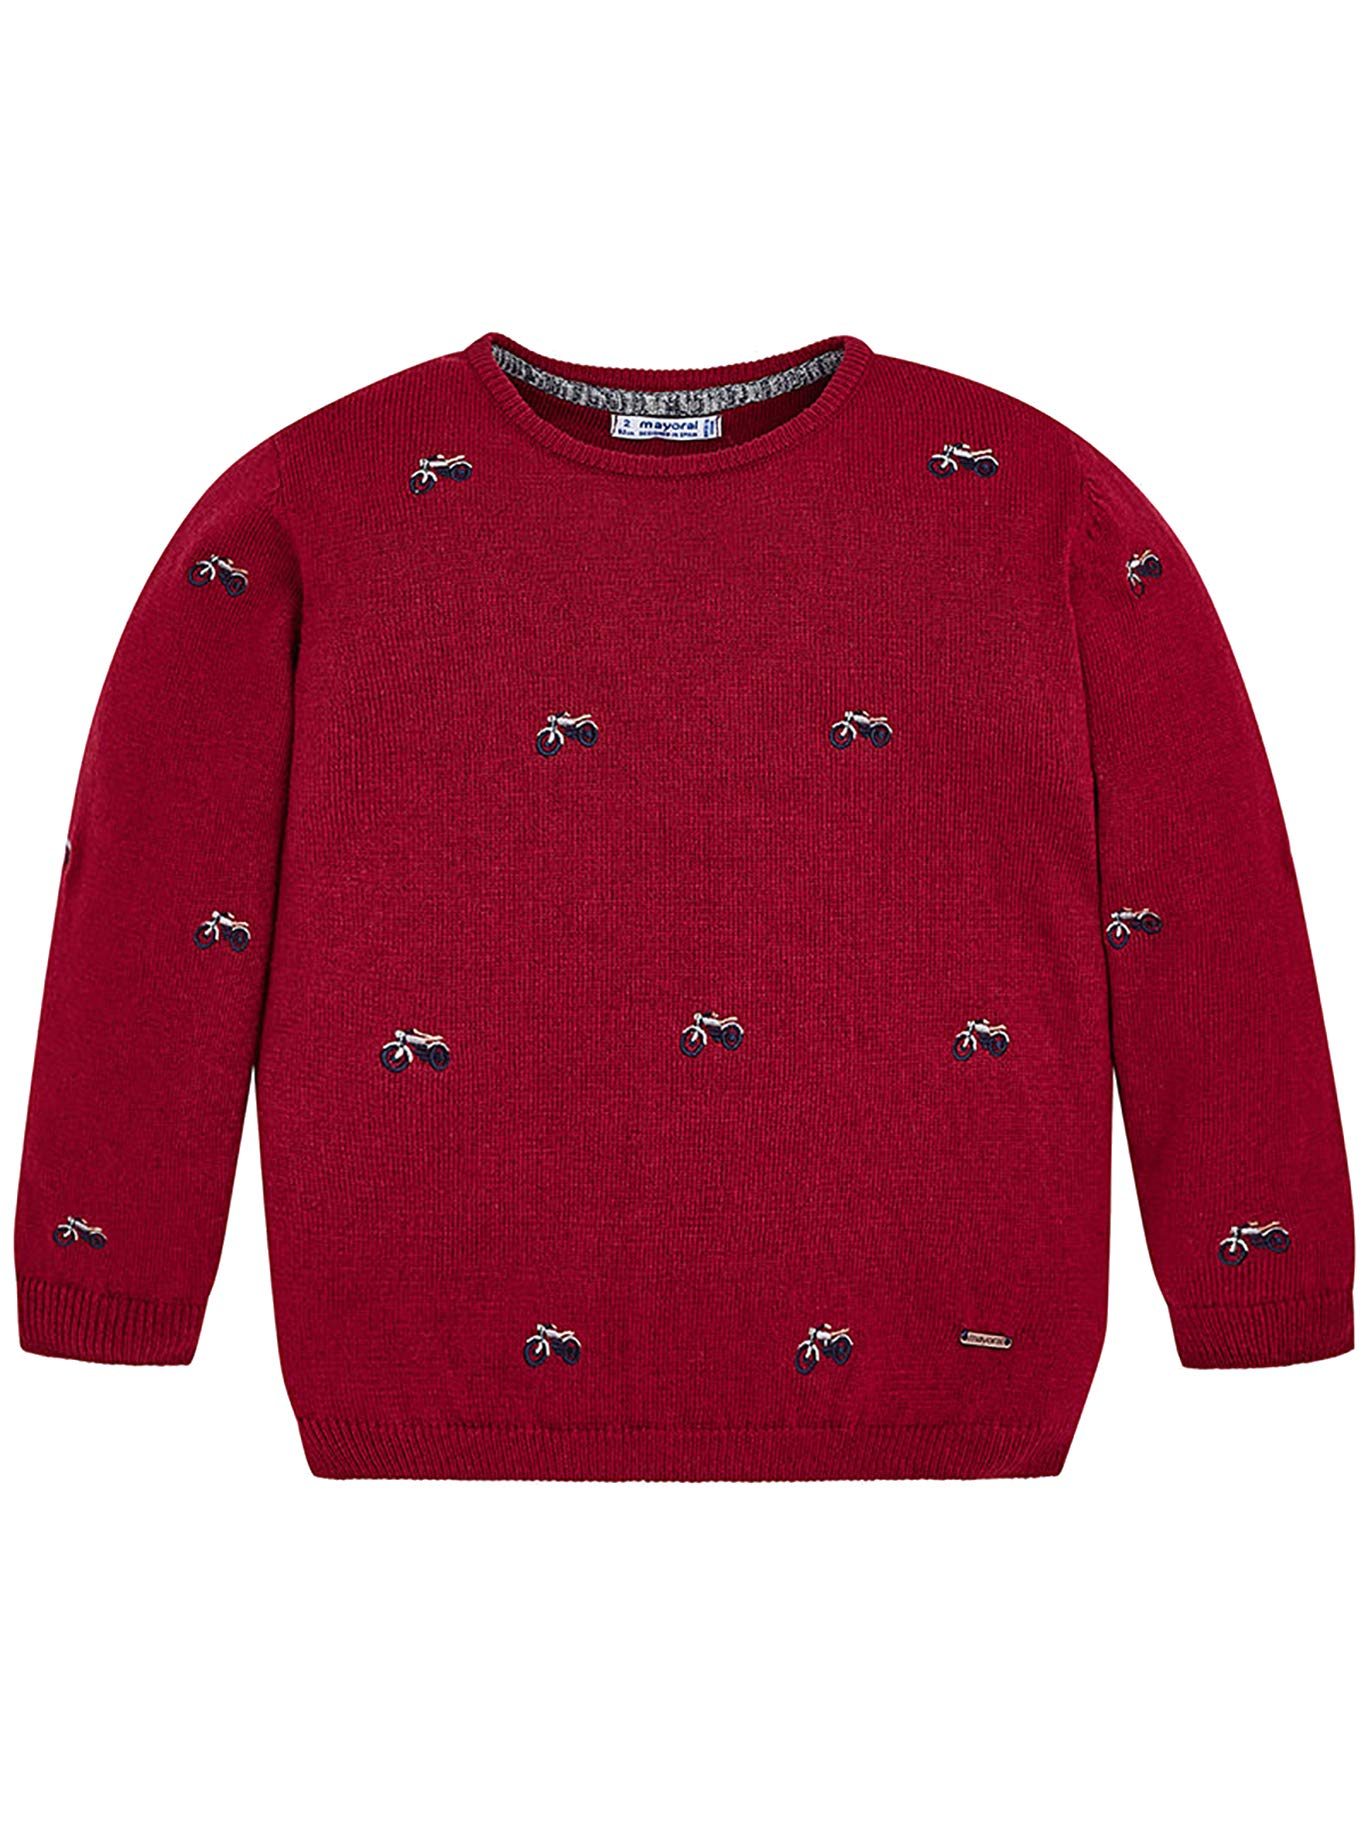 Mayoral 18-04306-030 - Jeresey for Boys 9 Years Red Wine